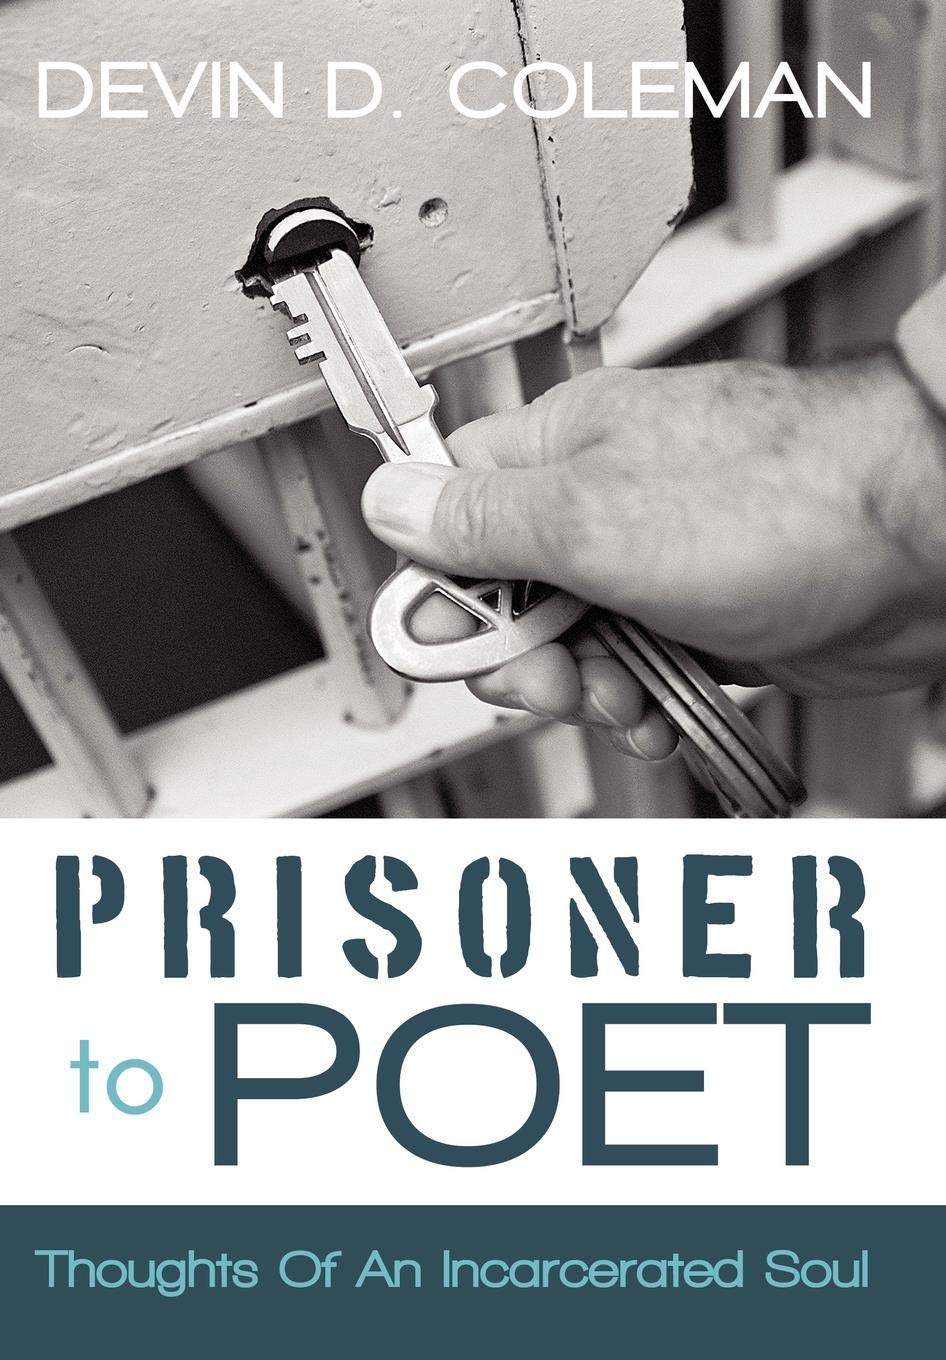 Prisoner To Poet: Thoughts Of An Incarcerated Soul